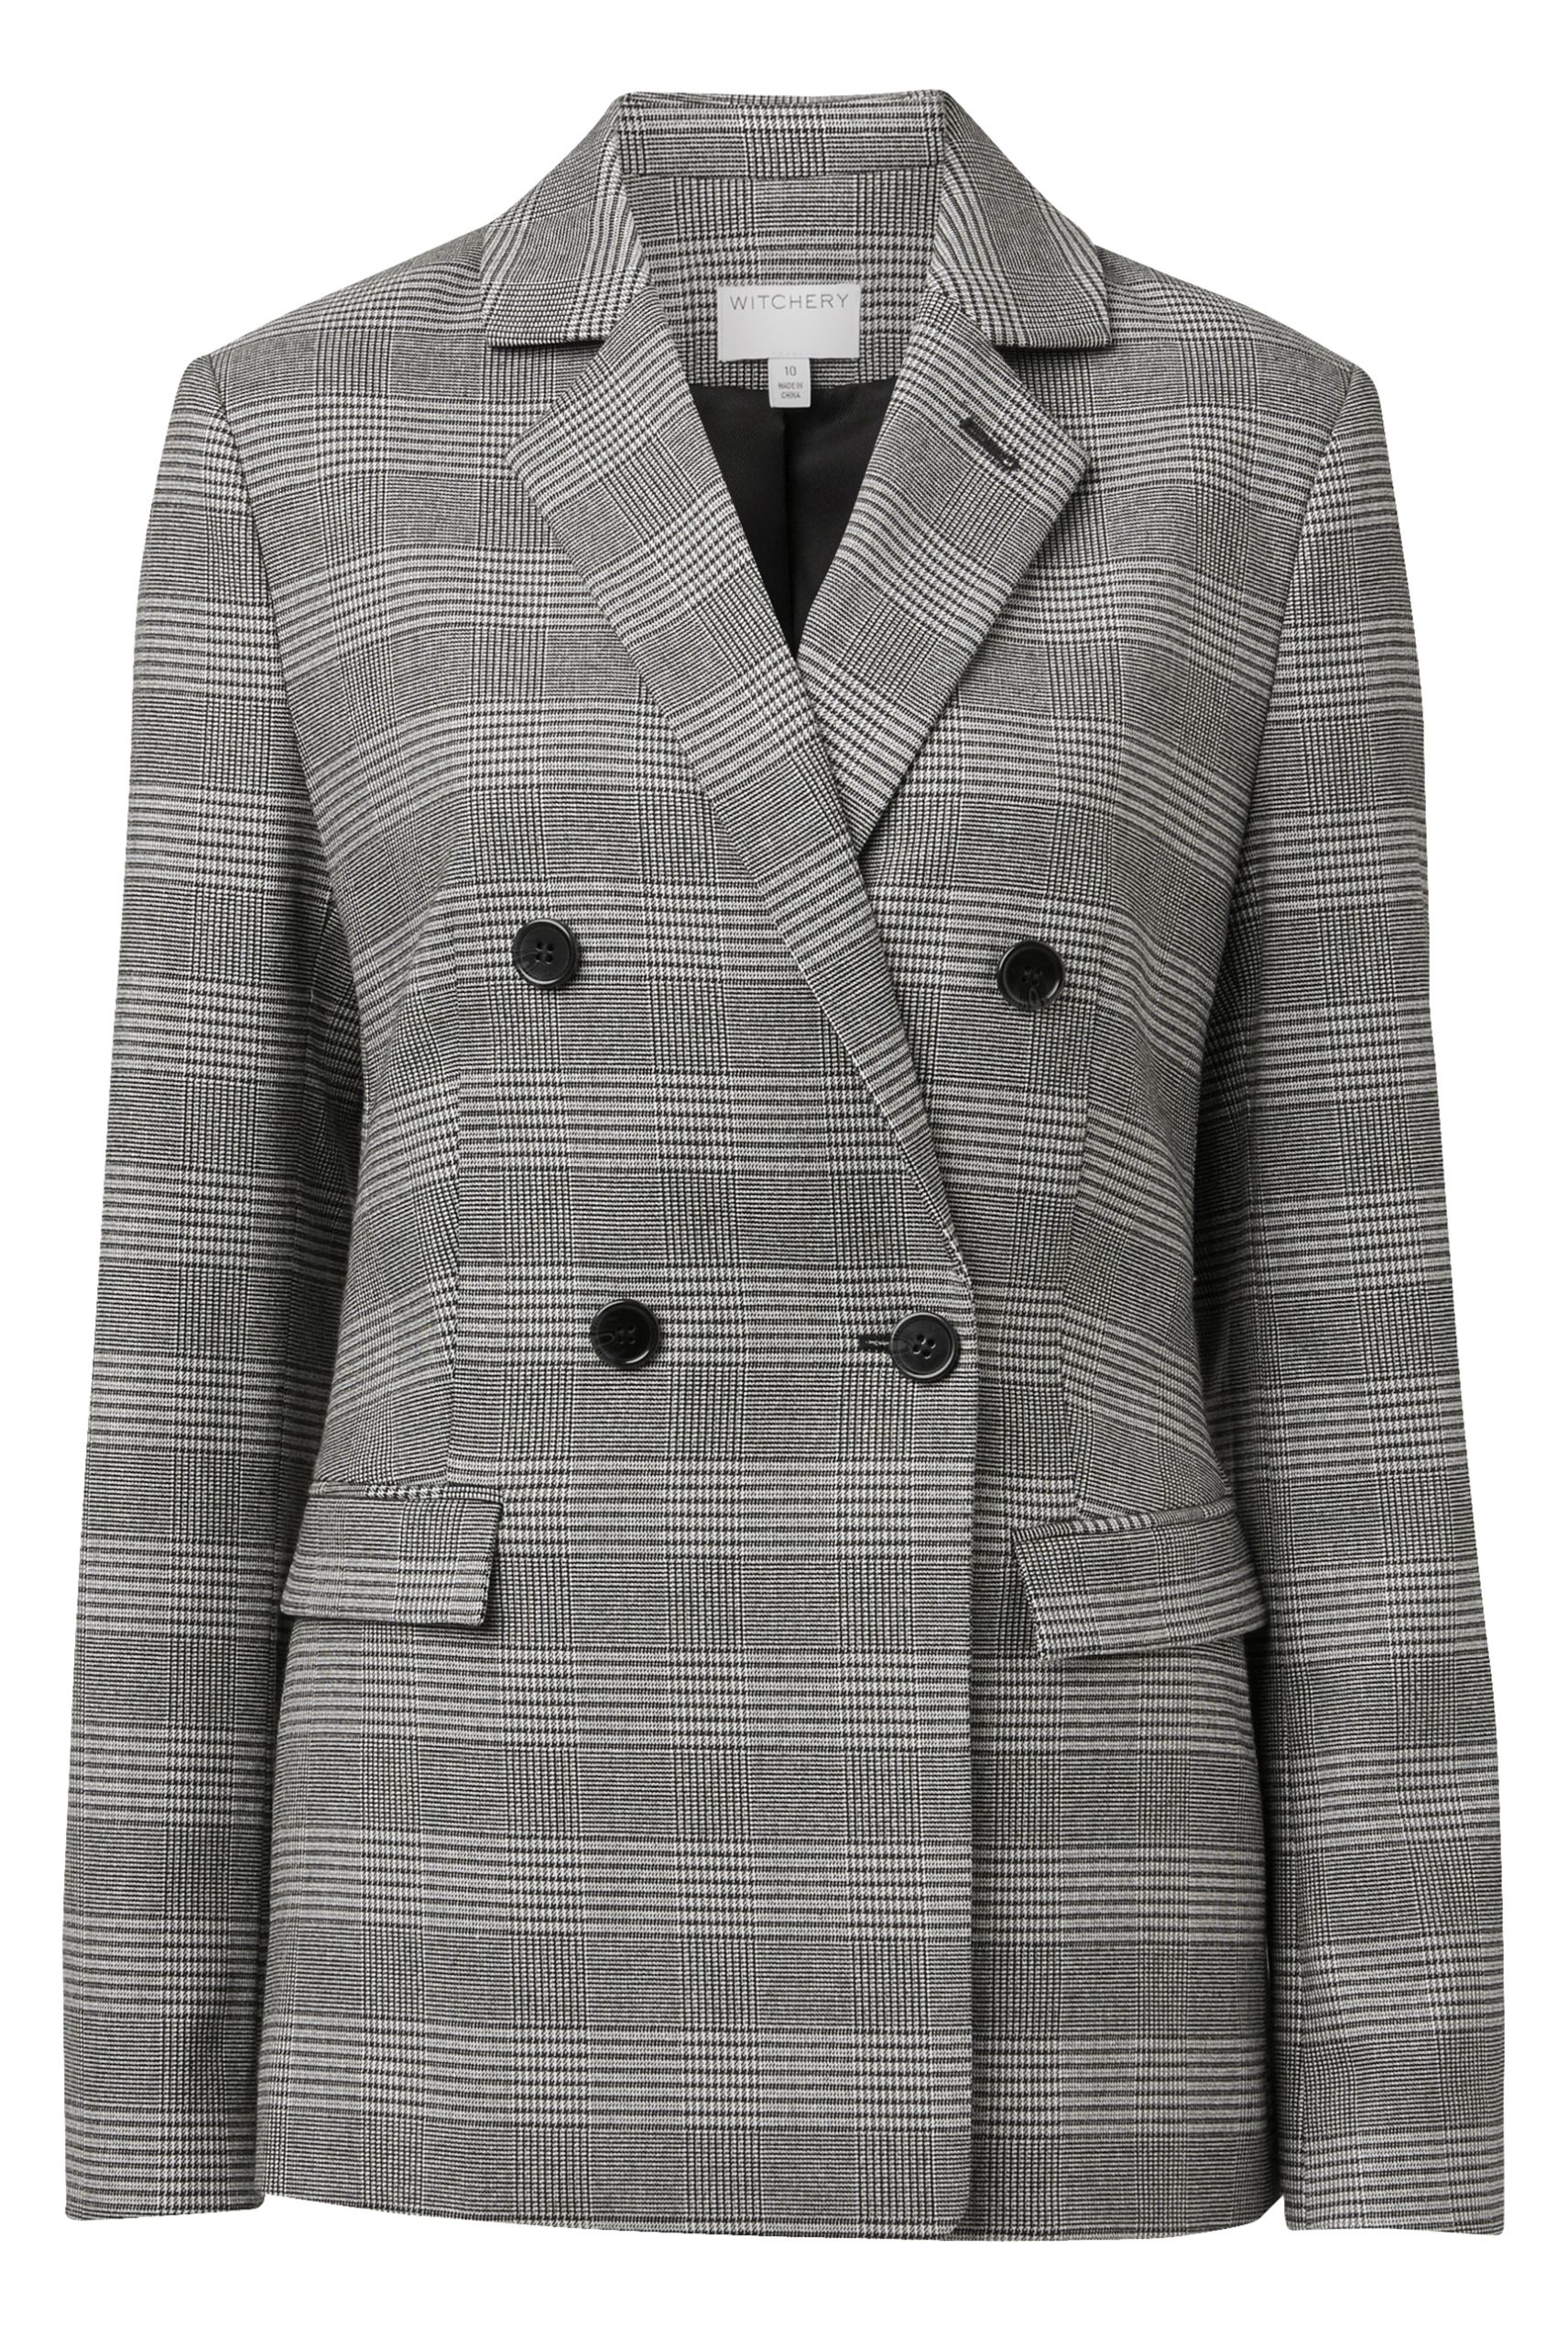 60212760_Witchery Check Double Breasted Blazer, RRP$299.90